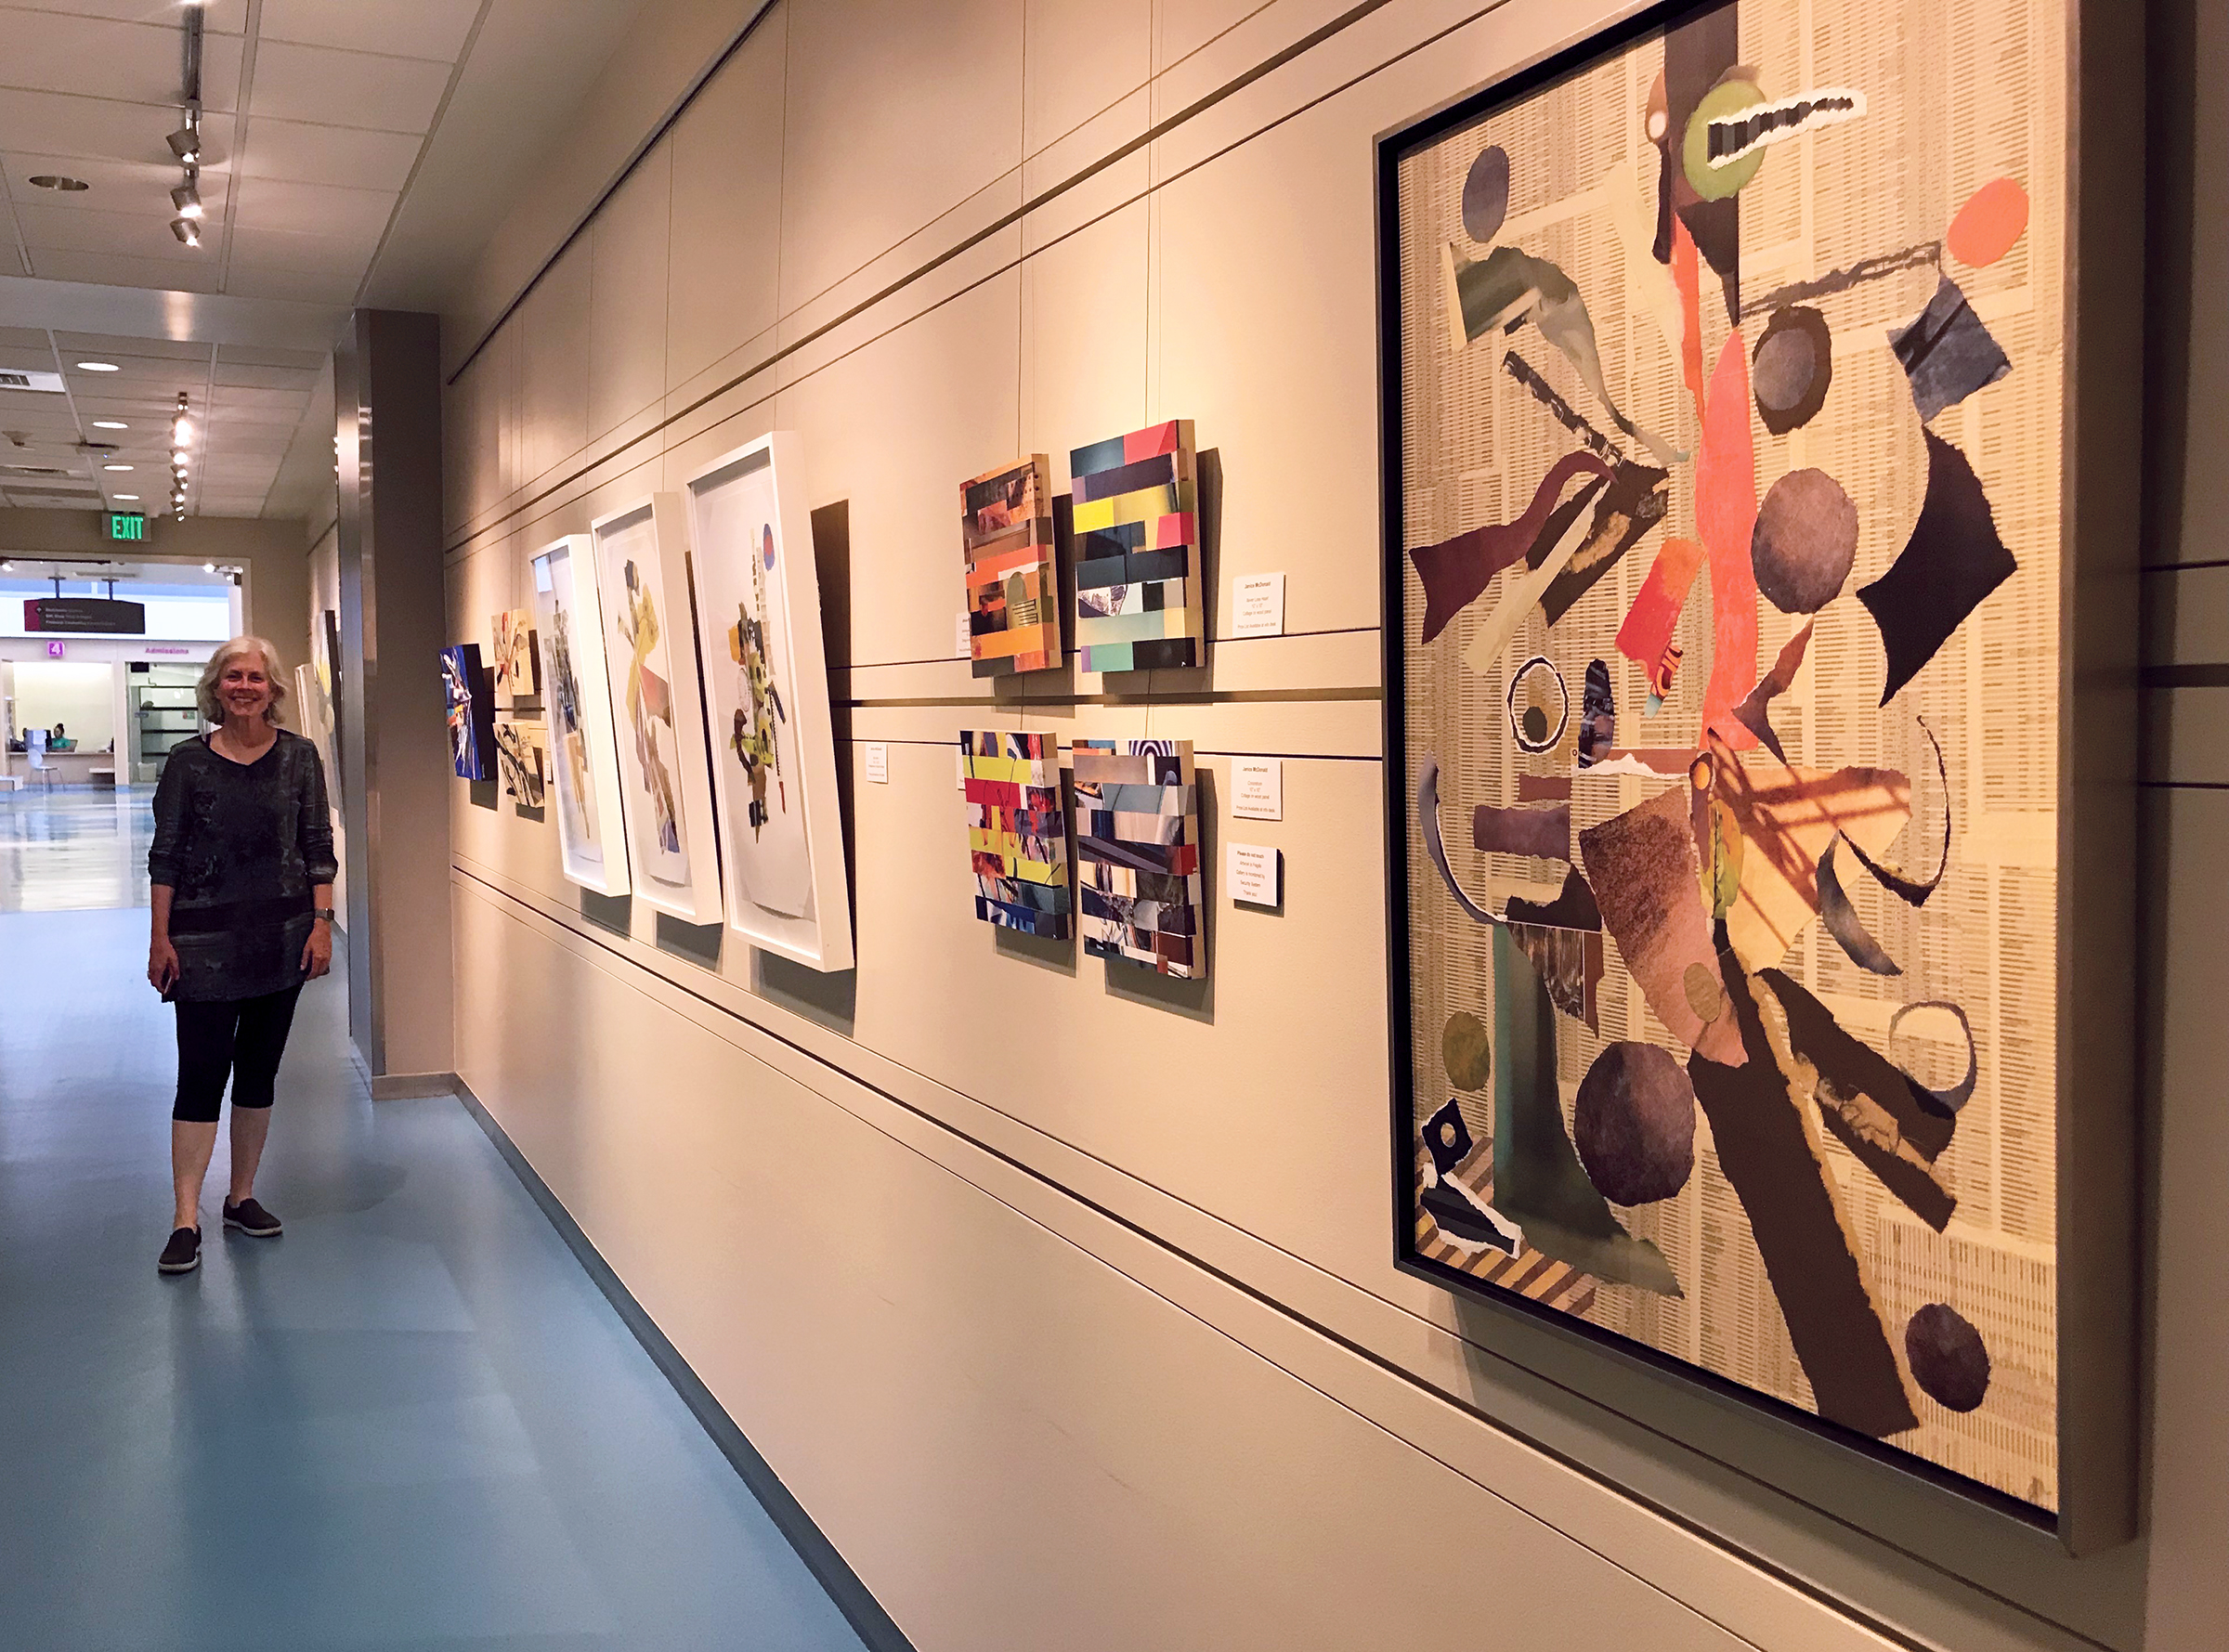 A view of my section of the exhibition, with thanks to curator Heidi Huisjen, who selected works that represent nearly my whole collage-making career… loved seeing them all hanging together.